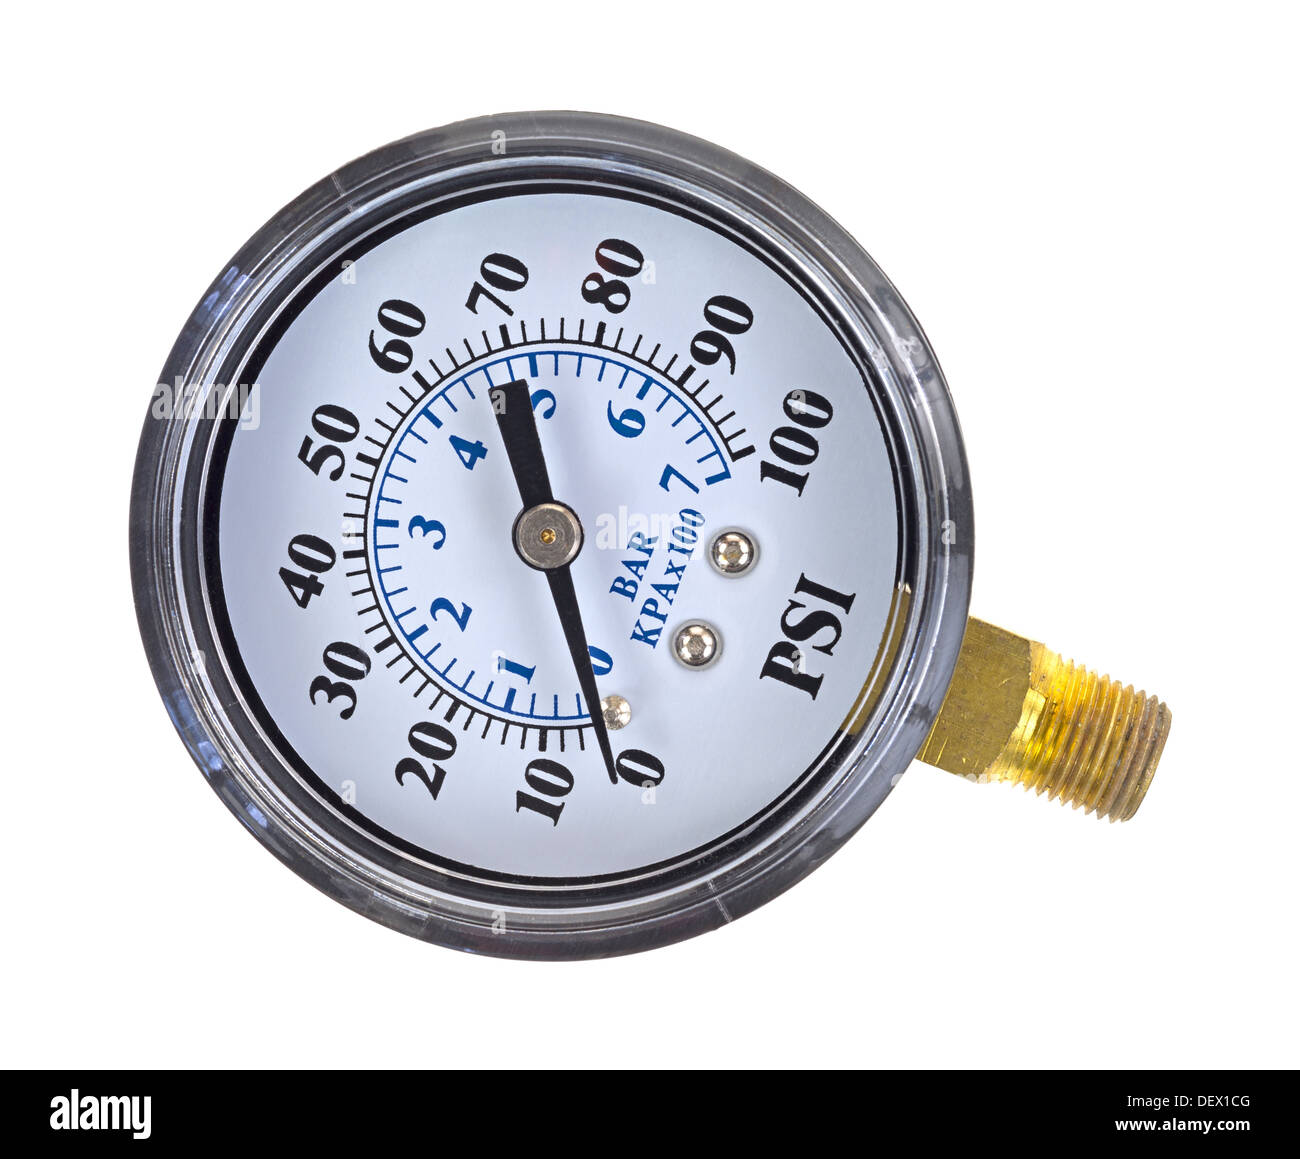 A new water pressure gauge on a white background. - Stock Image